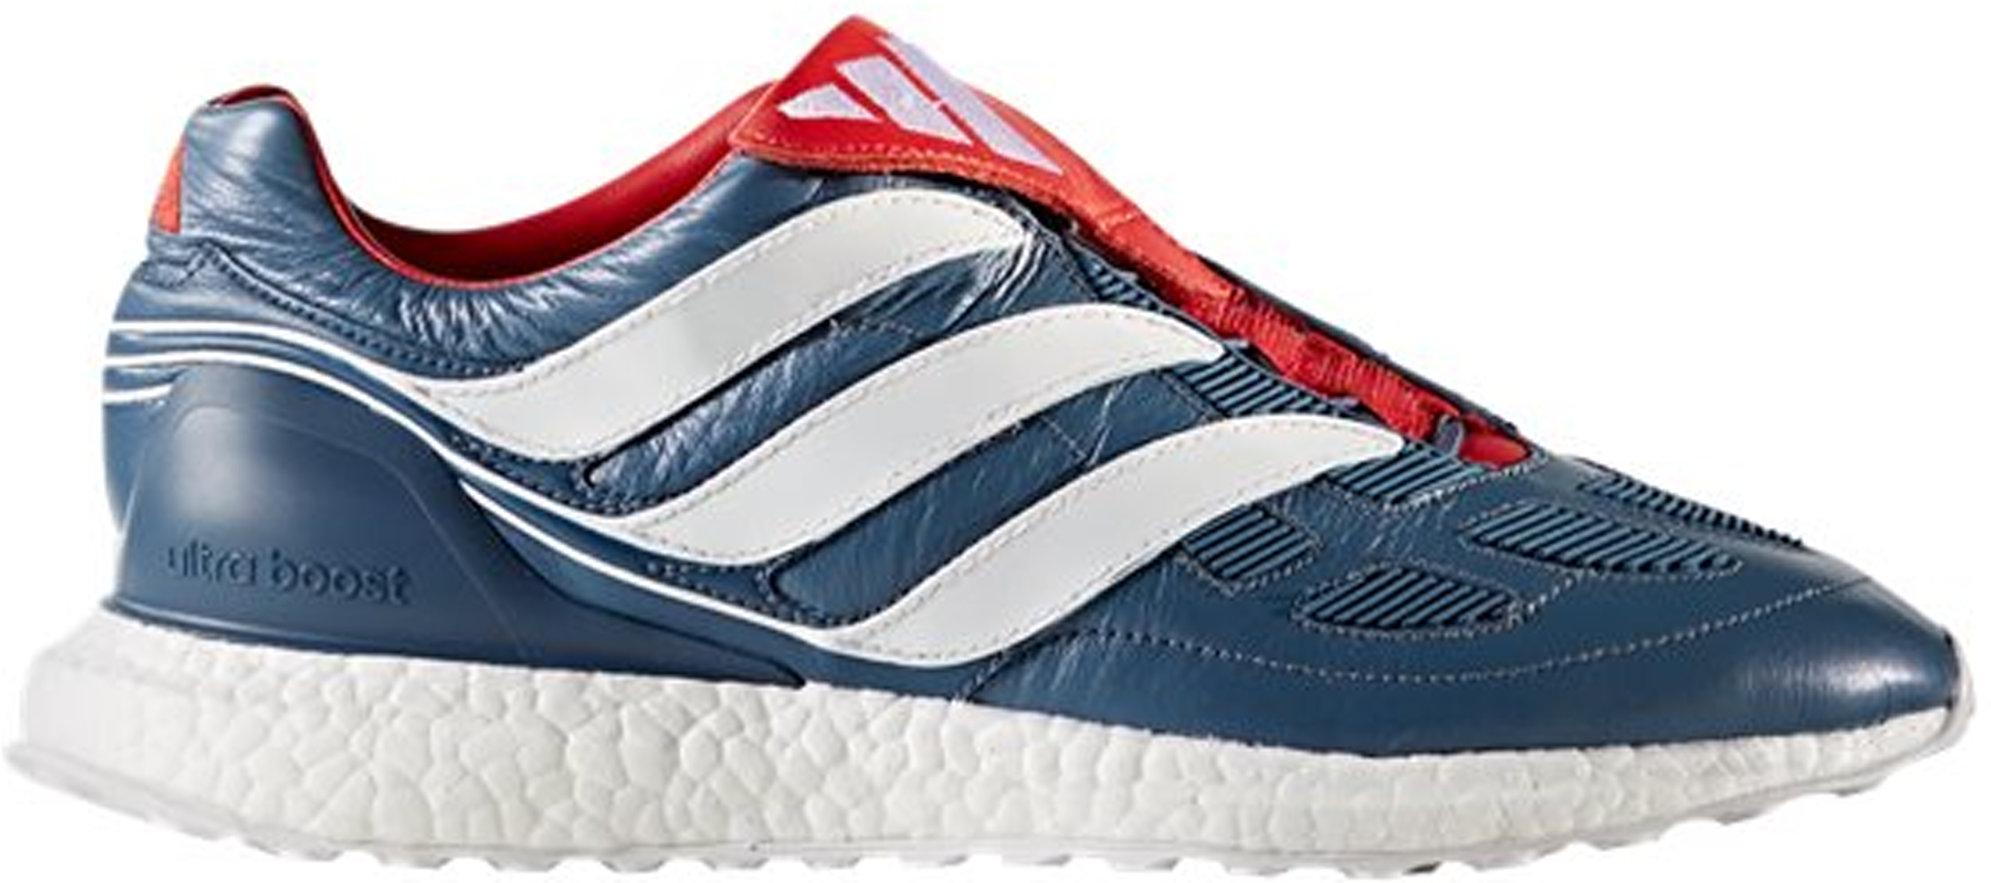 adidas Predator Ultra Boost Blue White Red